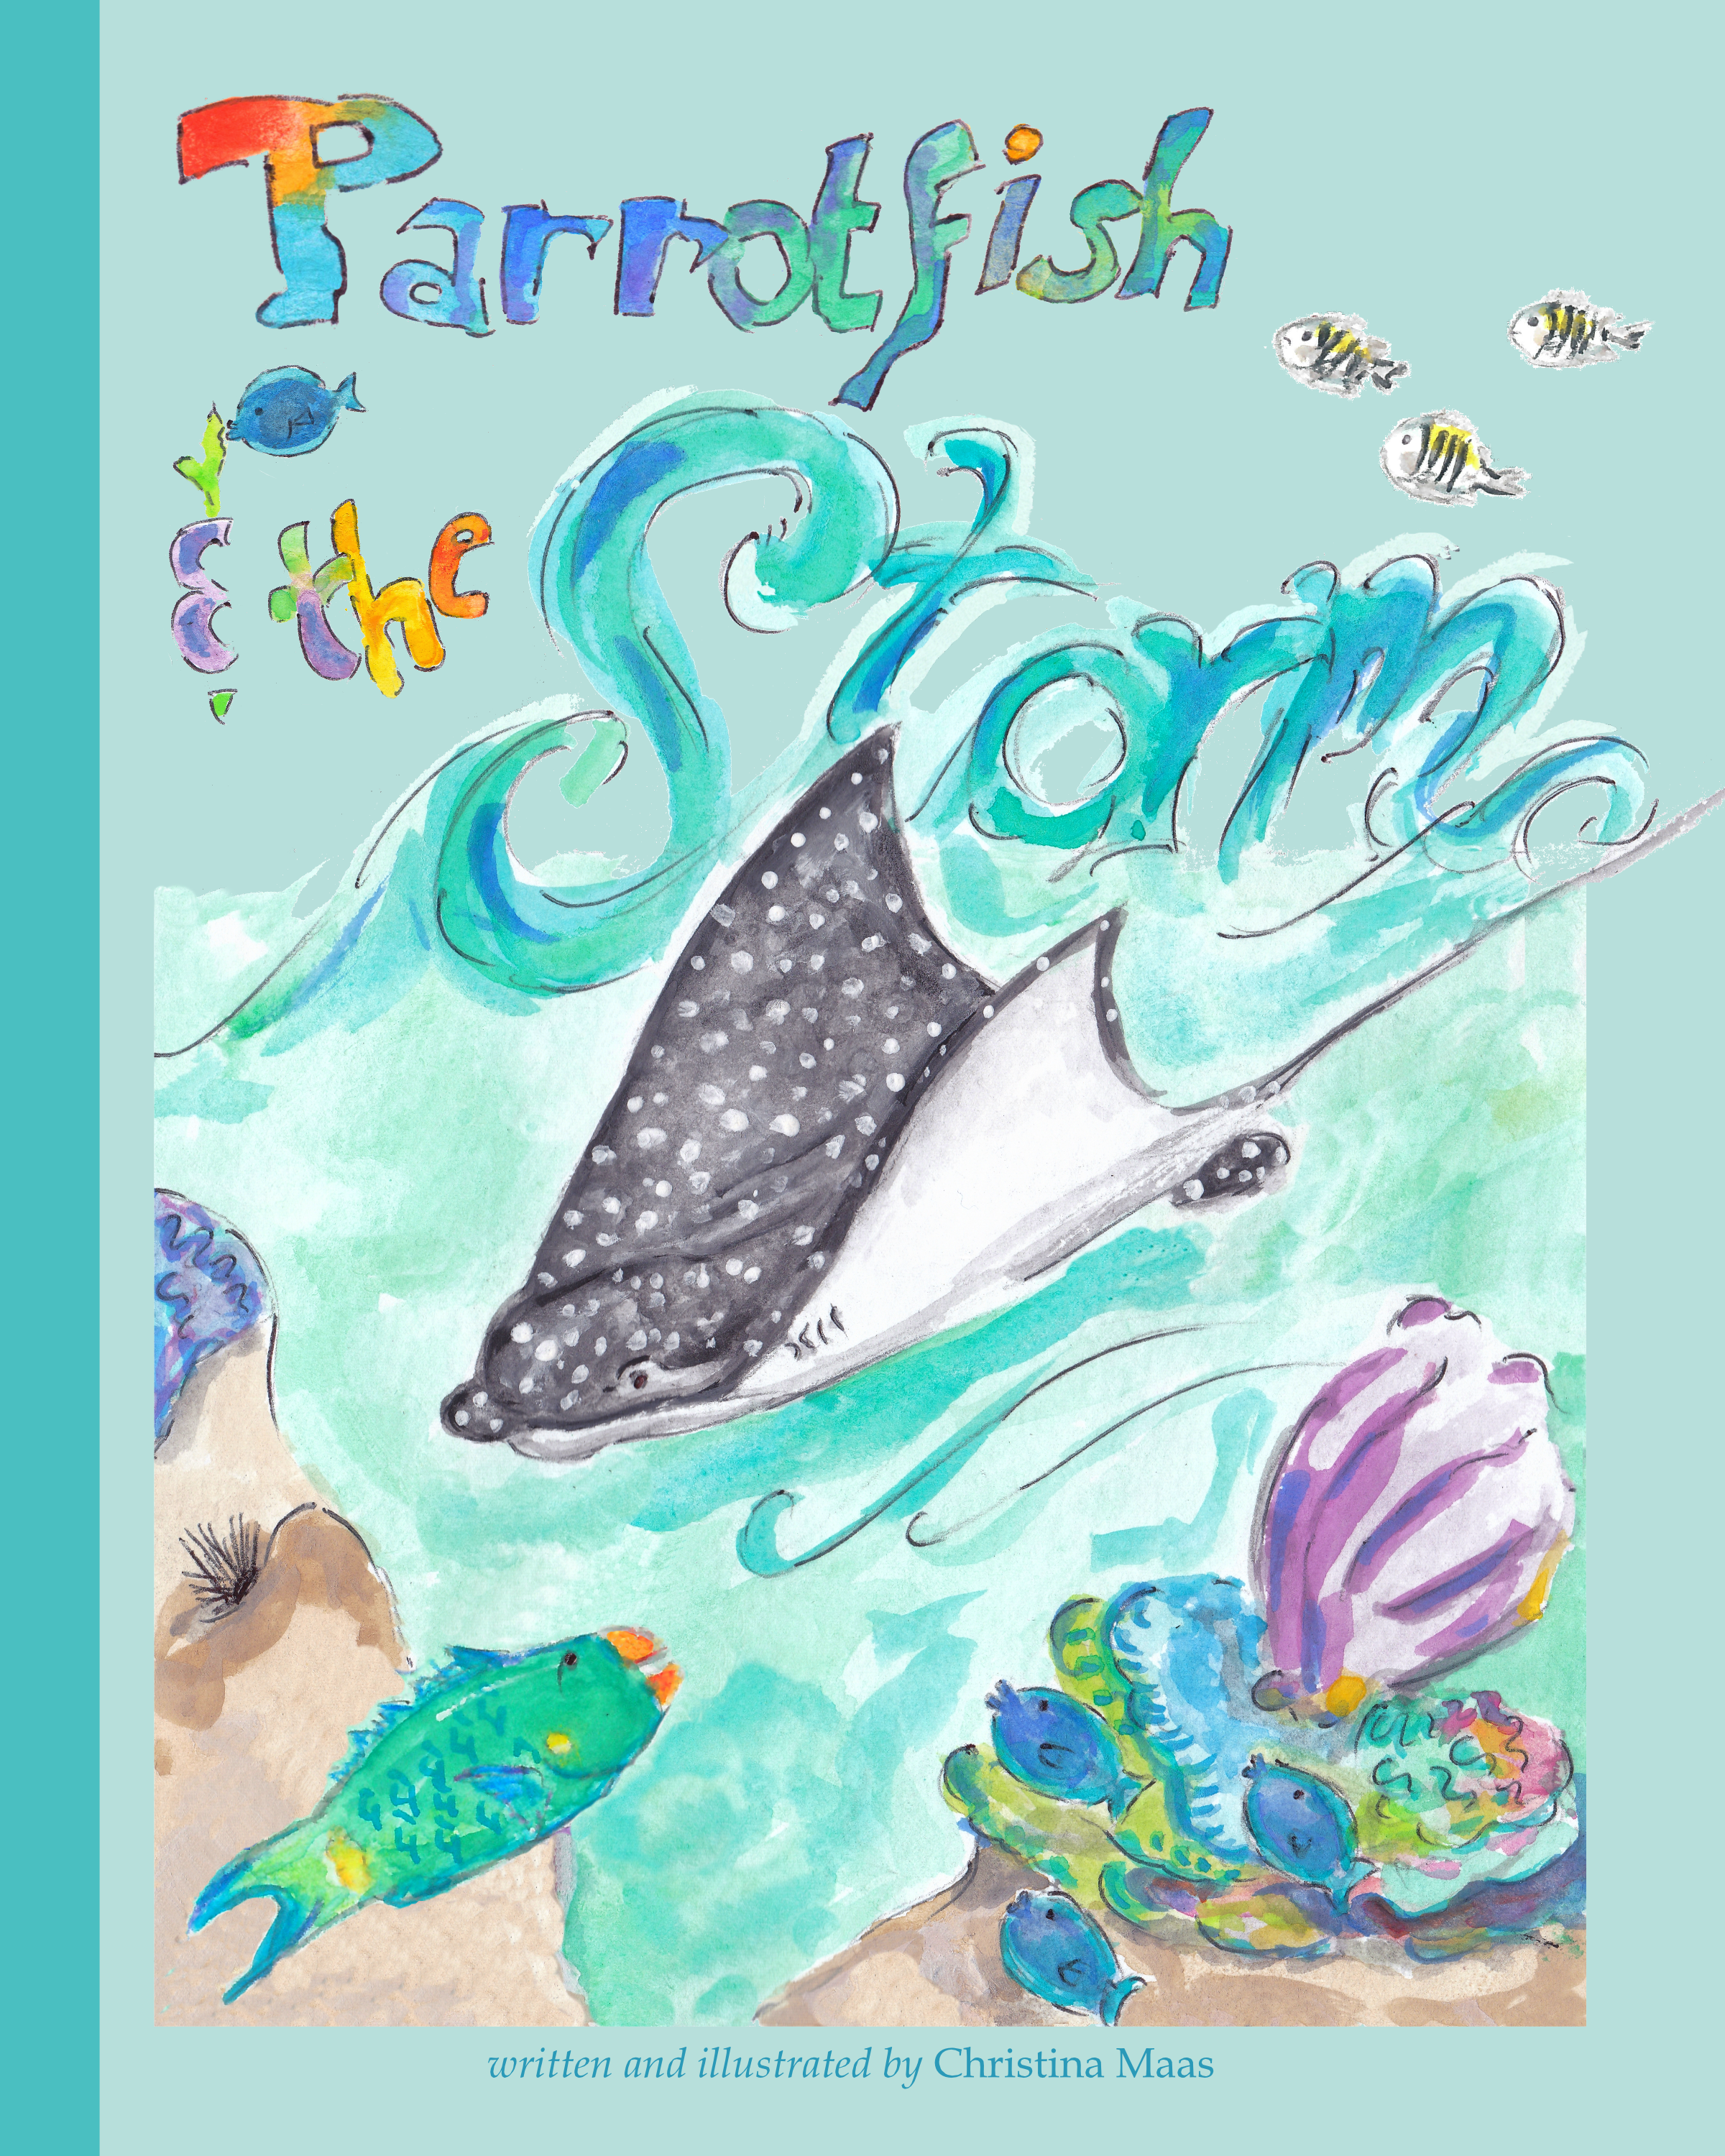 ''Parrotfish and the Storm'' - AVAILABLE NOW ON BLURB! https://www.blurb.com/b/9477310-parrotfish-and-the-stormParrotfish is startled by a strong current sweeping through the reef, when suddenly Eagle Ray appears overhead to warn Parrotfish and his neighbors that a storm is coming and to take cover. Once the storm finally passes, Parrotfish is surprised at how much their reef has changed. It's up to him and his neighbors to restore their coral reef to its former state, and to help a neighboring reef that is struggling to recover. The involvement of an unlikely helper causes an initial stir, but to everyone's surprise ends up being a hero in the effort to save the neighboring reef in trouble. An ecological story about coral reef resilience and recovery, underlining the importance of herbivores and apex predators in maintaining a coral reef ecosystem's delicate balance and ability to recover after a large-scale disturbance.https://www.blurb.com/b/9477310-parrotfish-and-the-storm